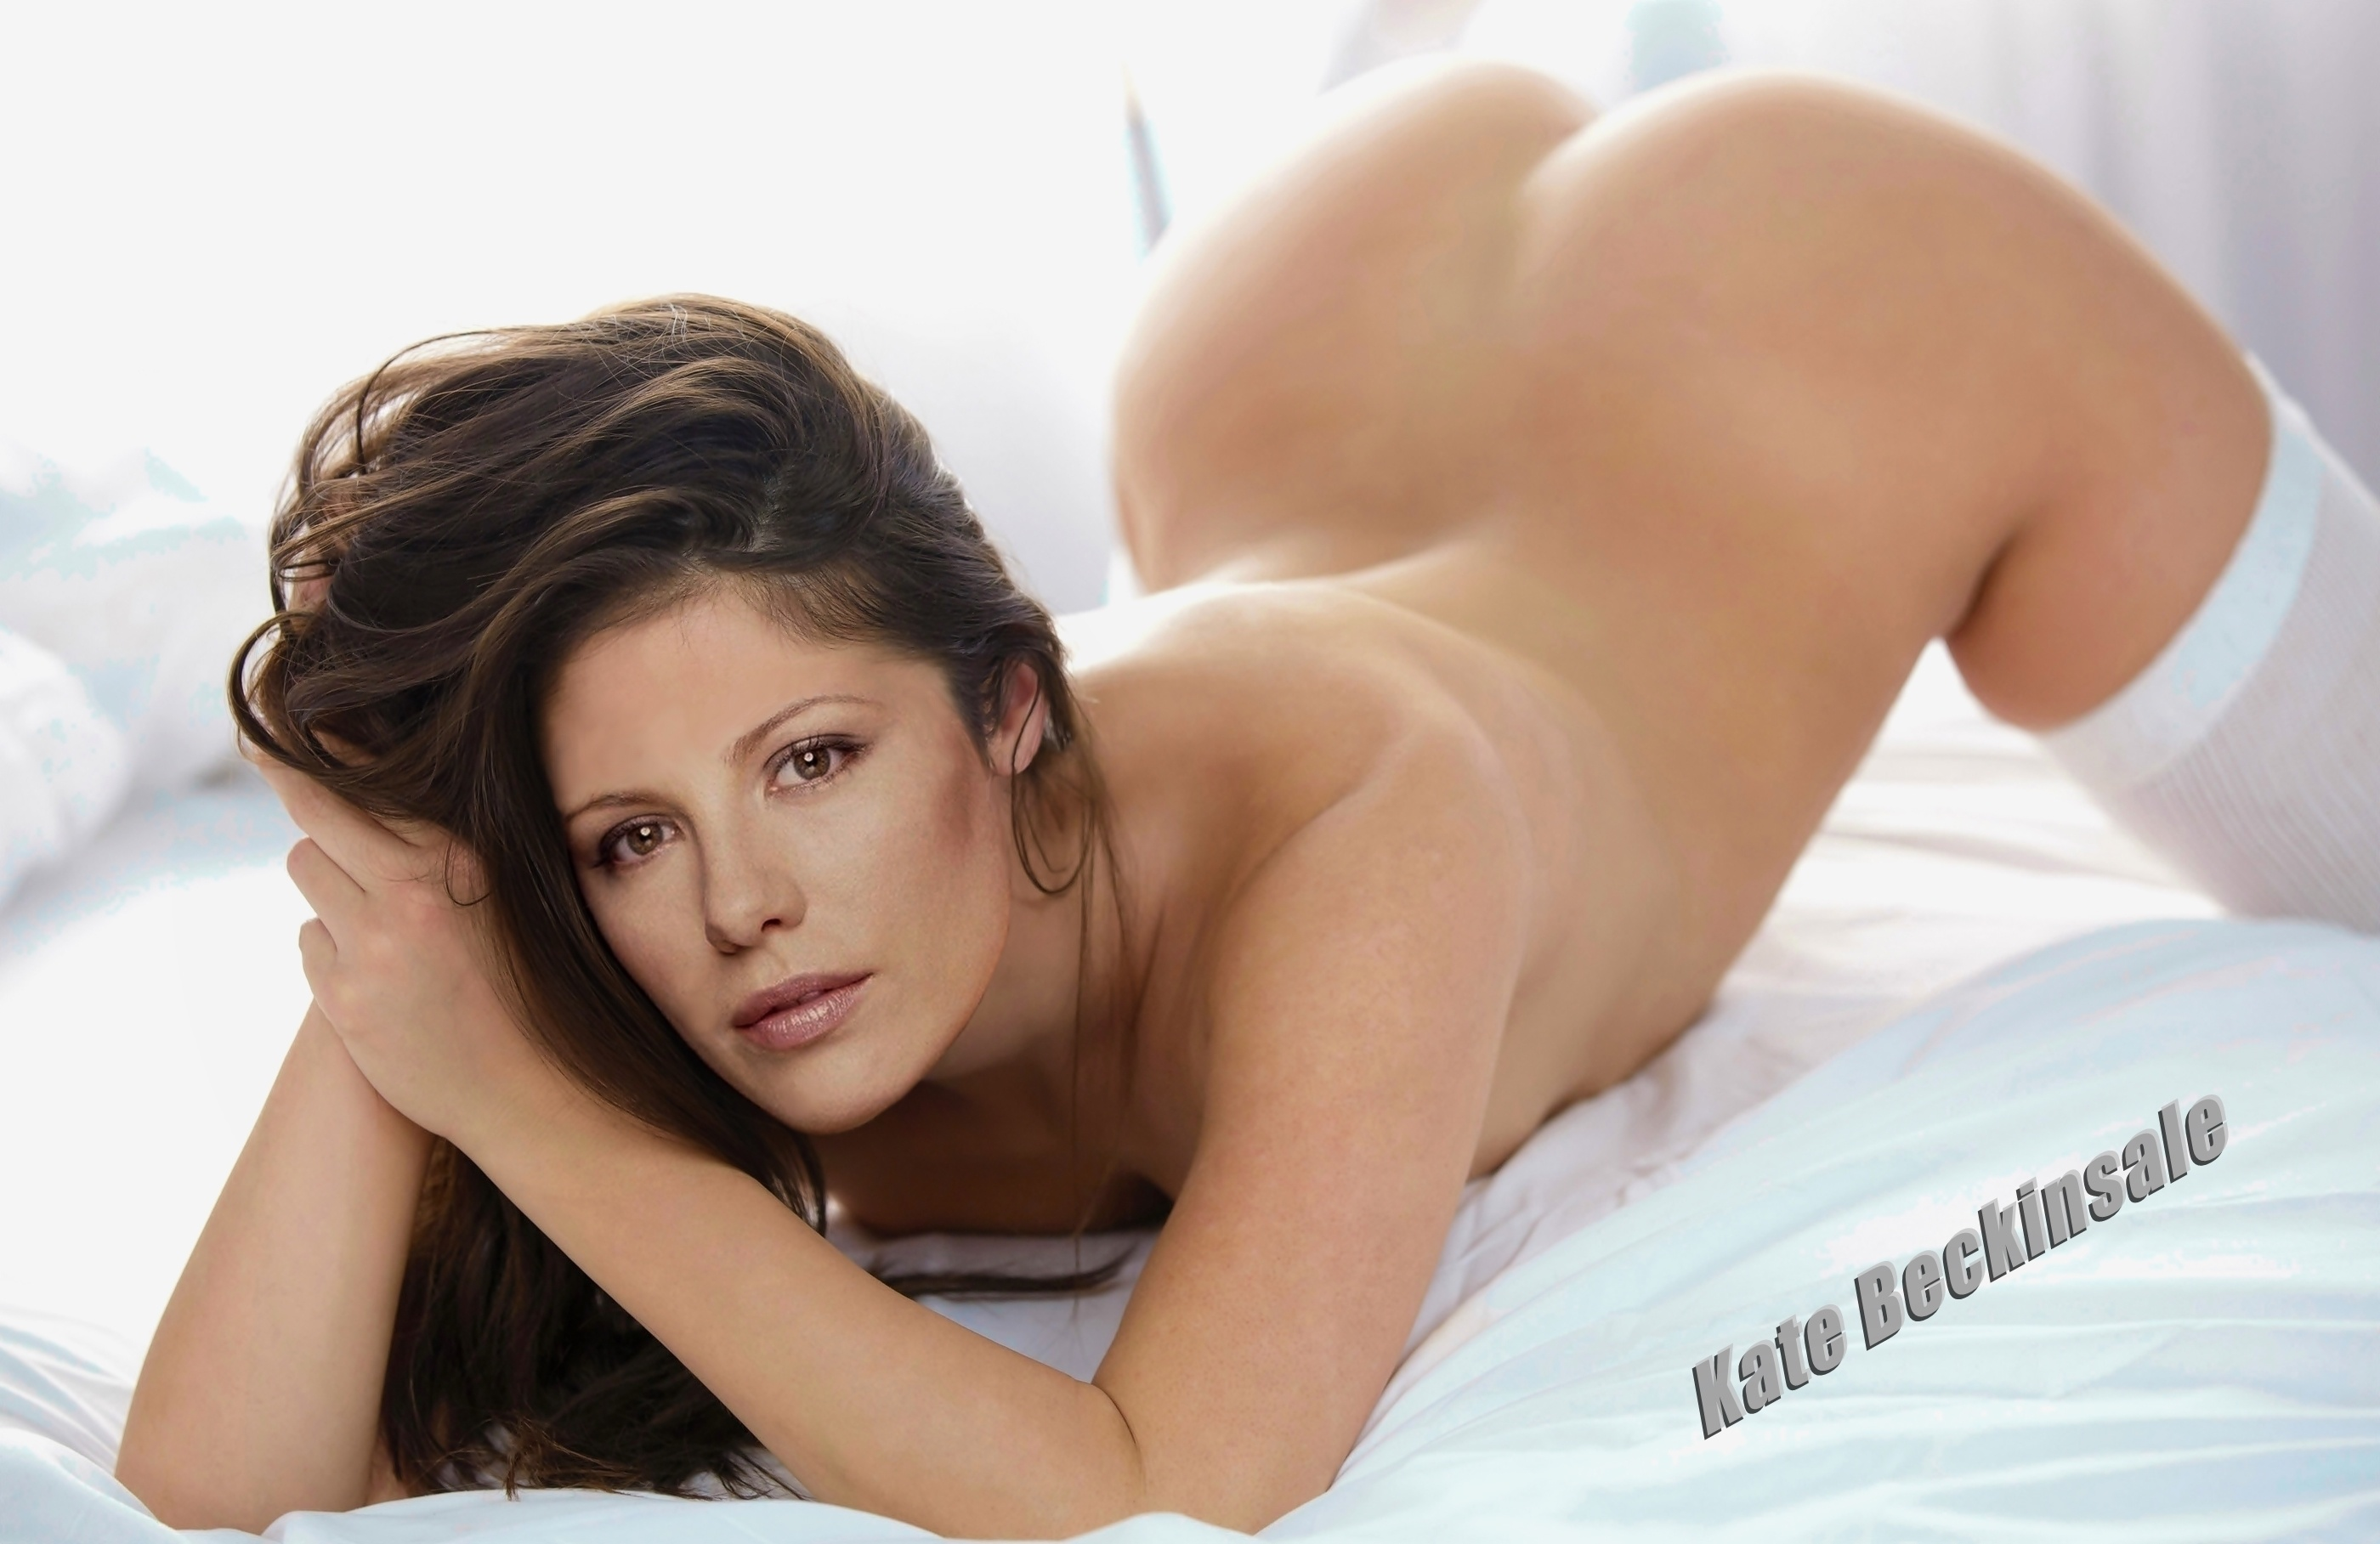 kate fakes sexy nude ass